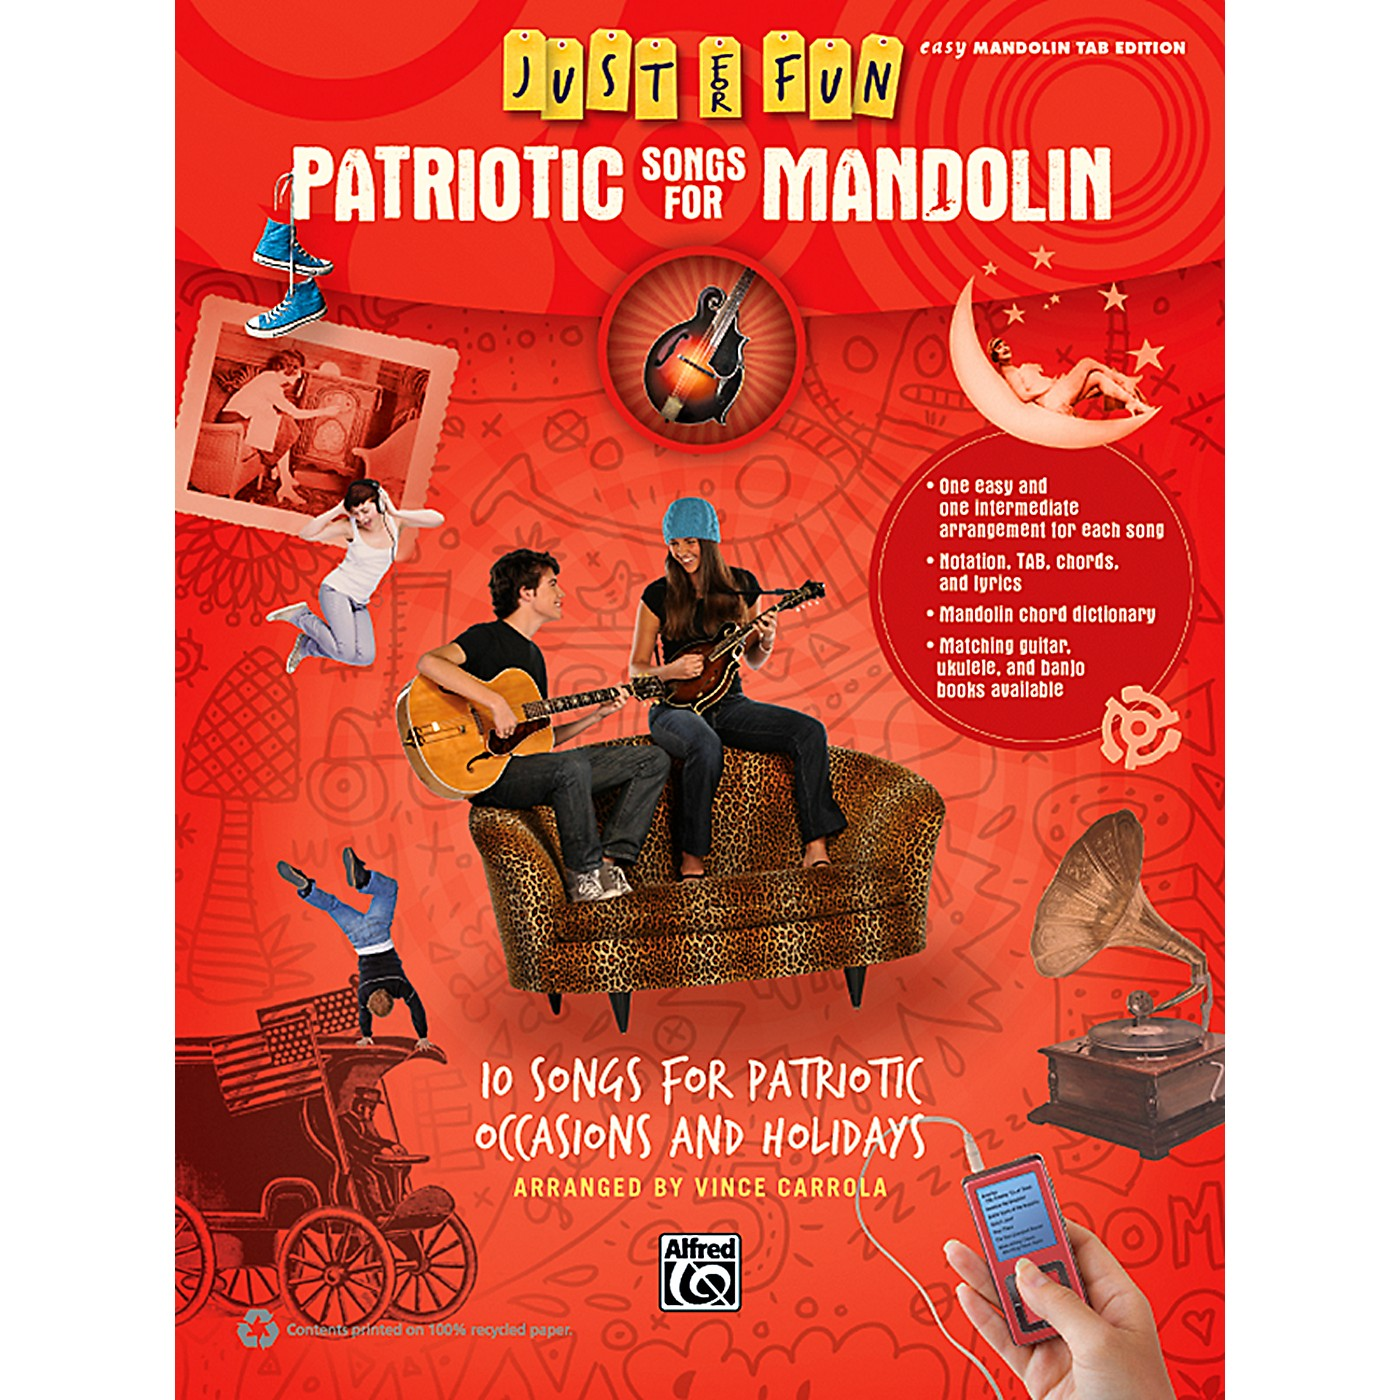 Alfred Just for Fun Patriotic Songs for Mandolin Easy TAB Book thumbnail